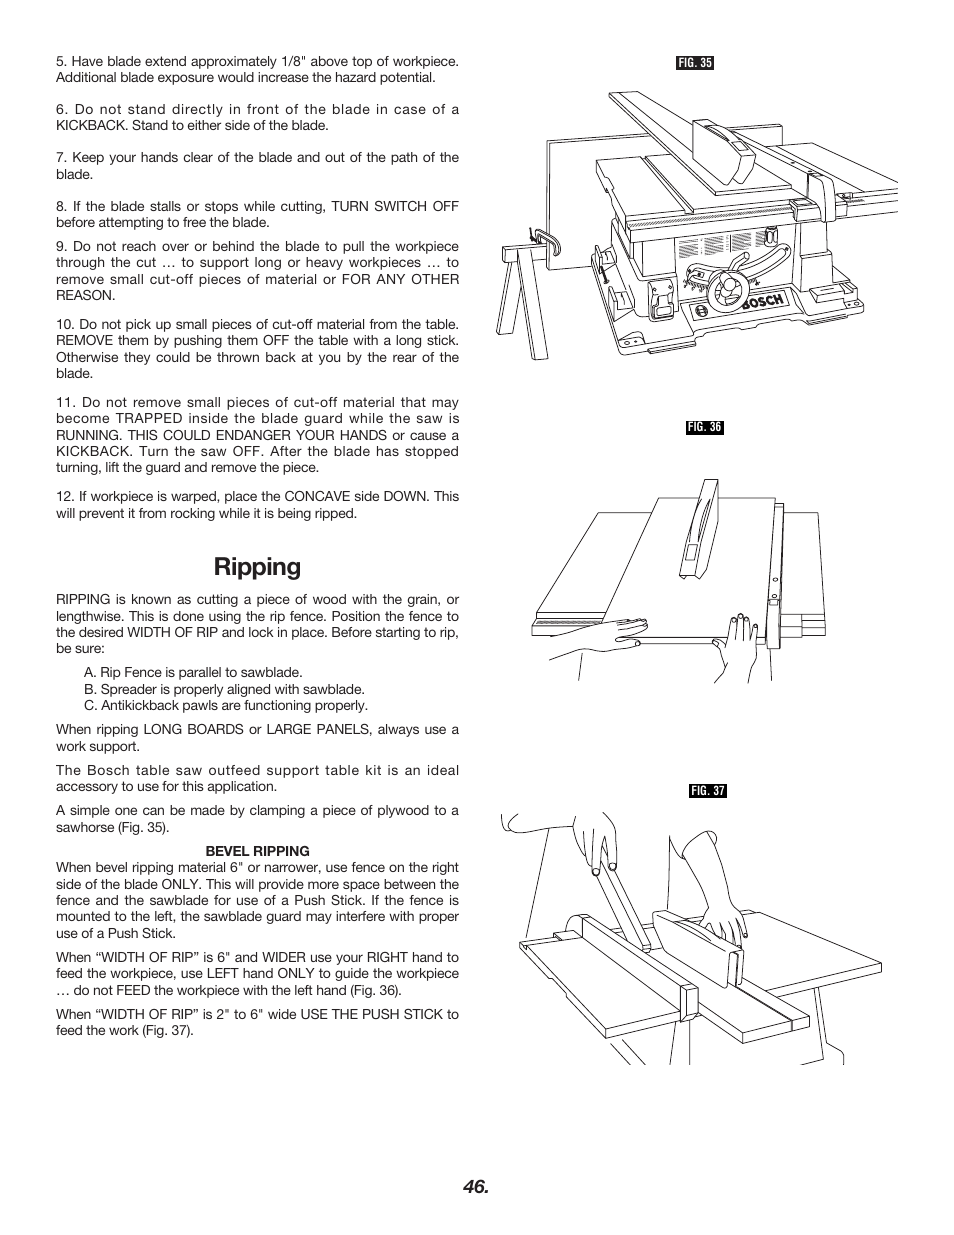 Ripping bosch 4000 user manual page 46 68 original mode ripping bosch 4000 user manual page 46 68 greentooth Choice Image